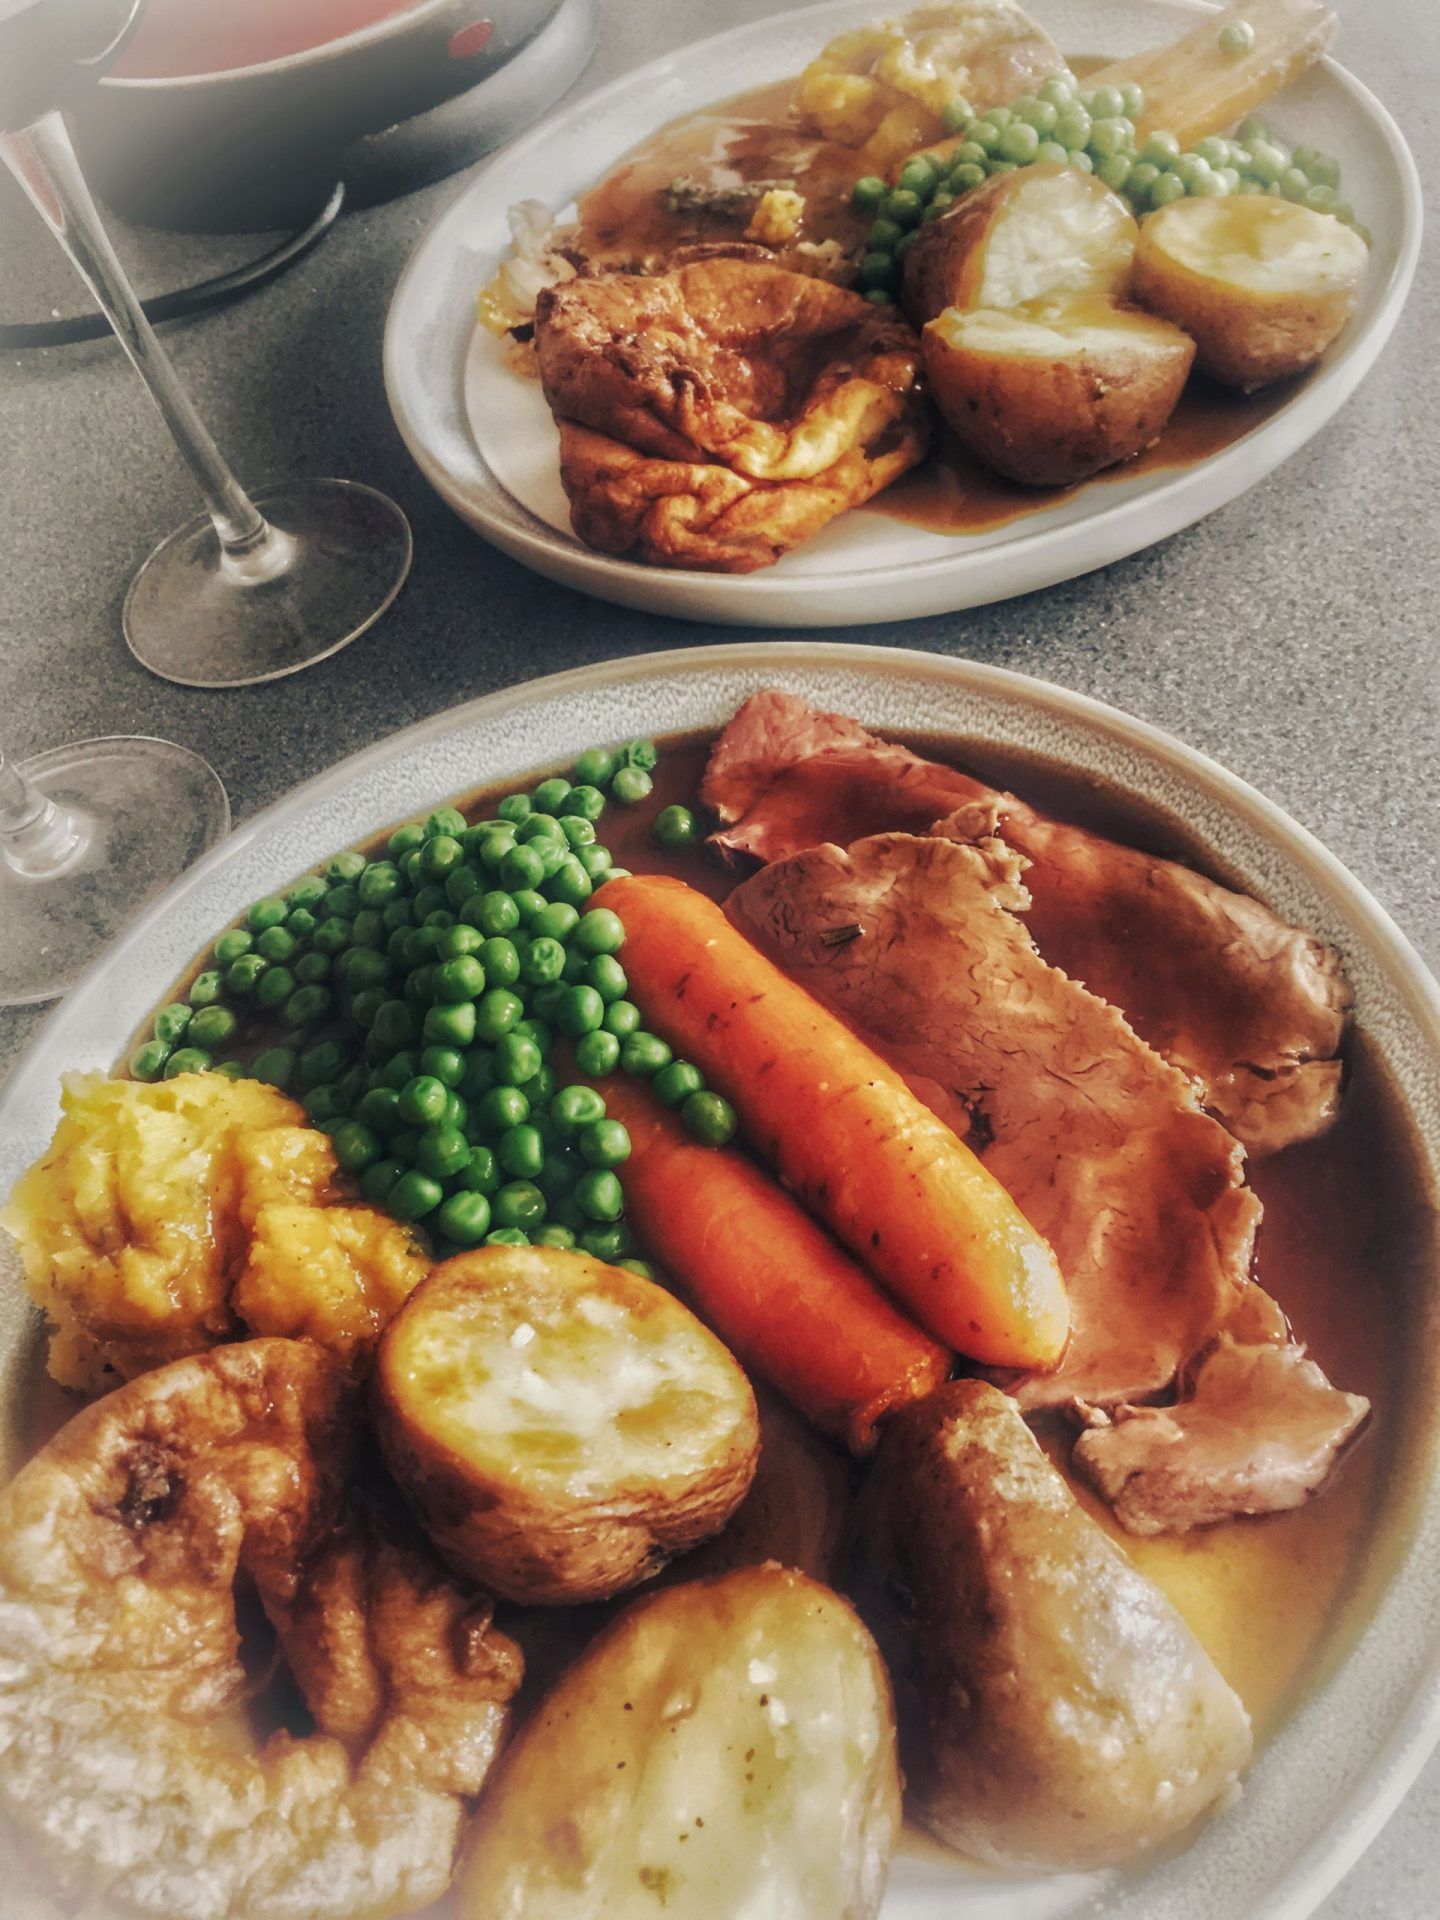 A Sunday roast, with beef, carrots, roast potatoes, peas and a glass of red wine